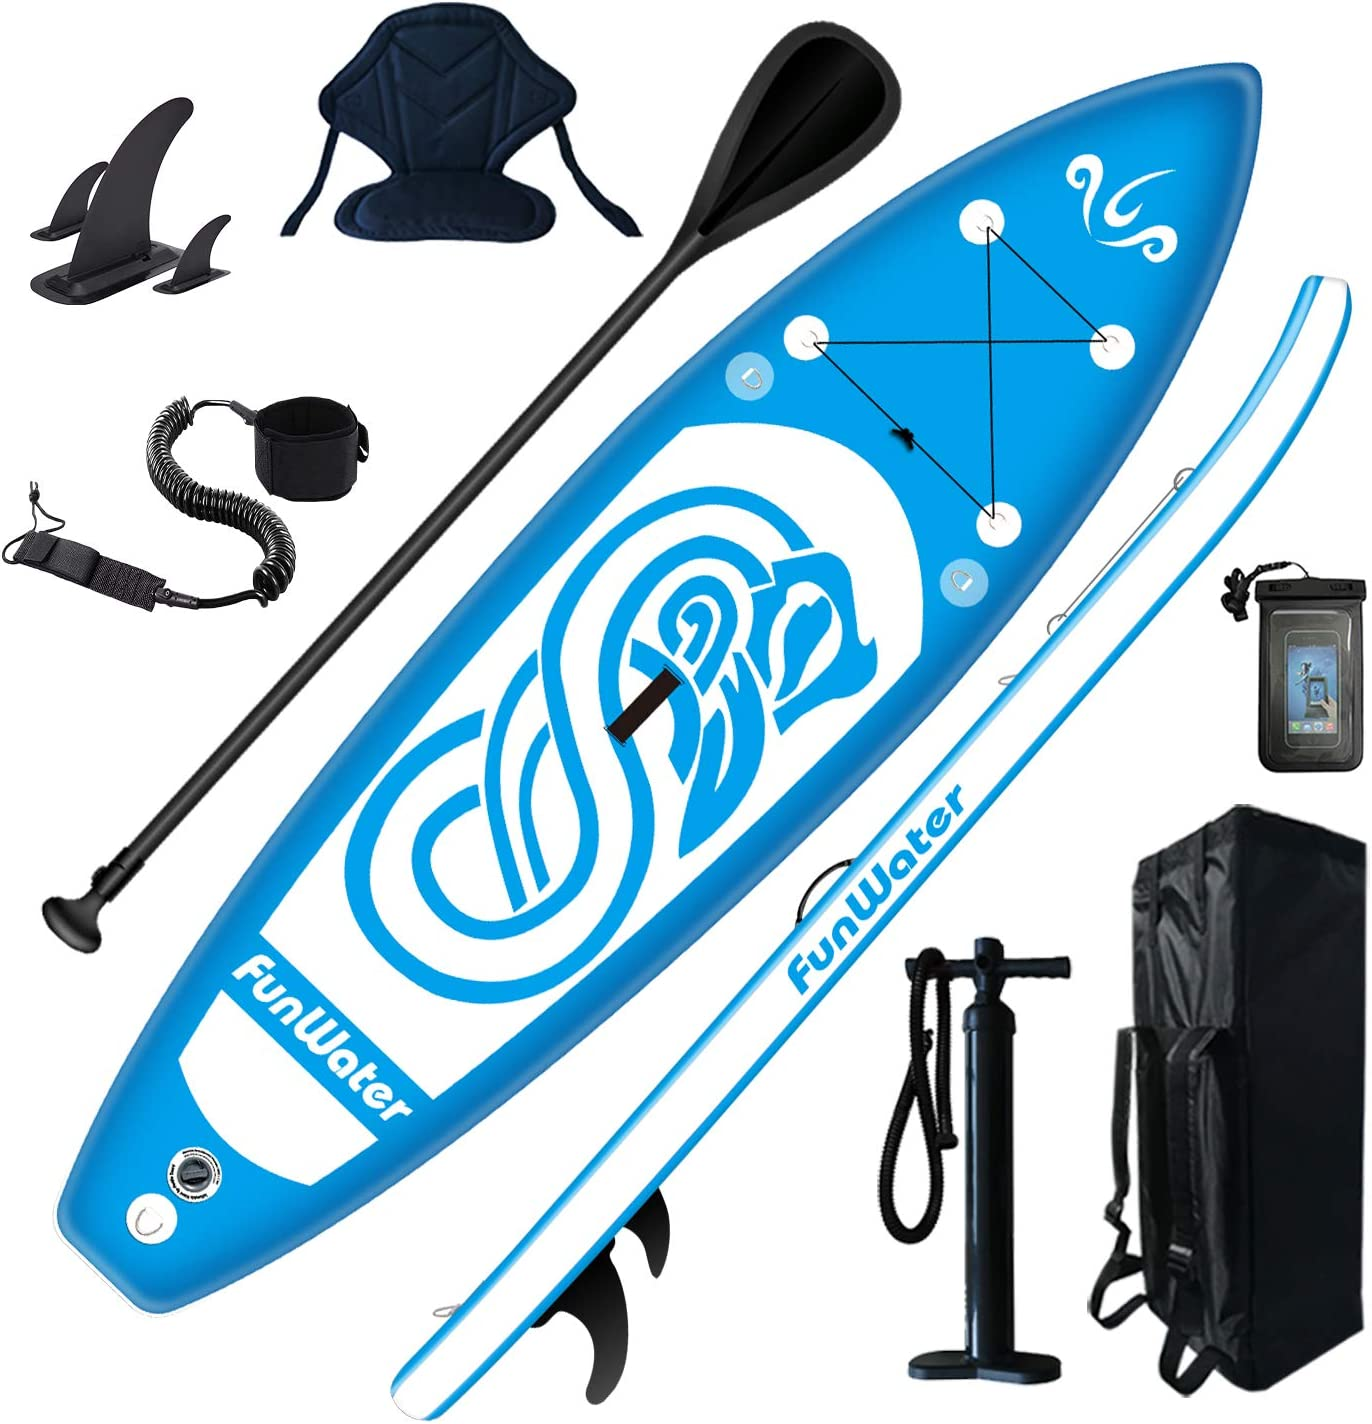 Youth Adults Beginner Wide Stance Bottom Fins for Surfing Control oddpaddle Inflatable Stand Up Paddle Board 11/×33/×6 Non-Slip Deck with Premium SUP Accessories